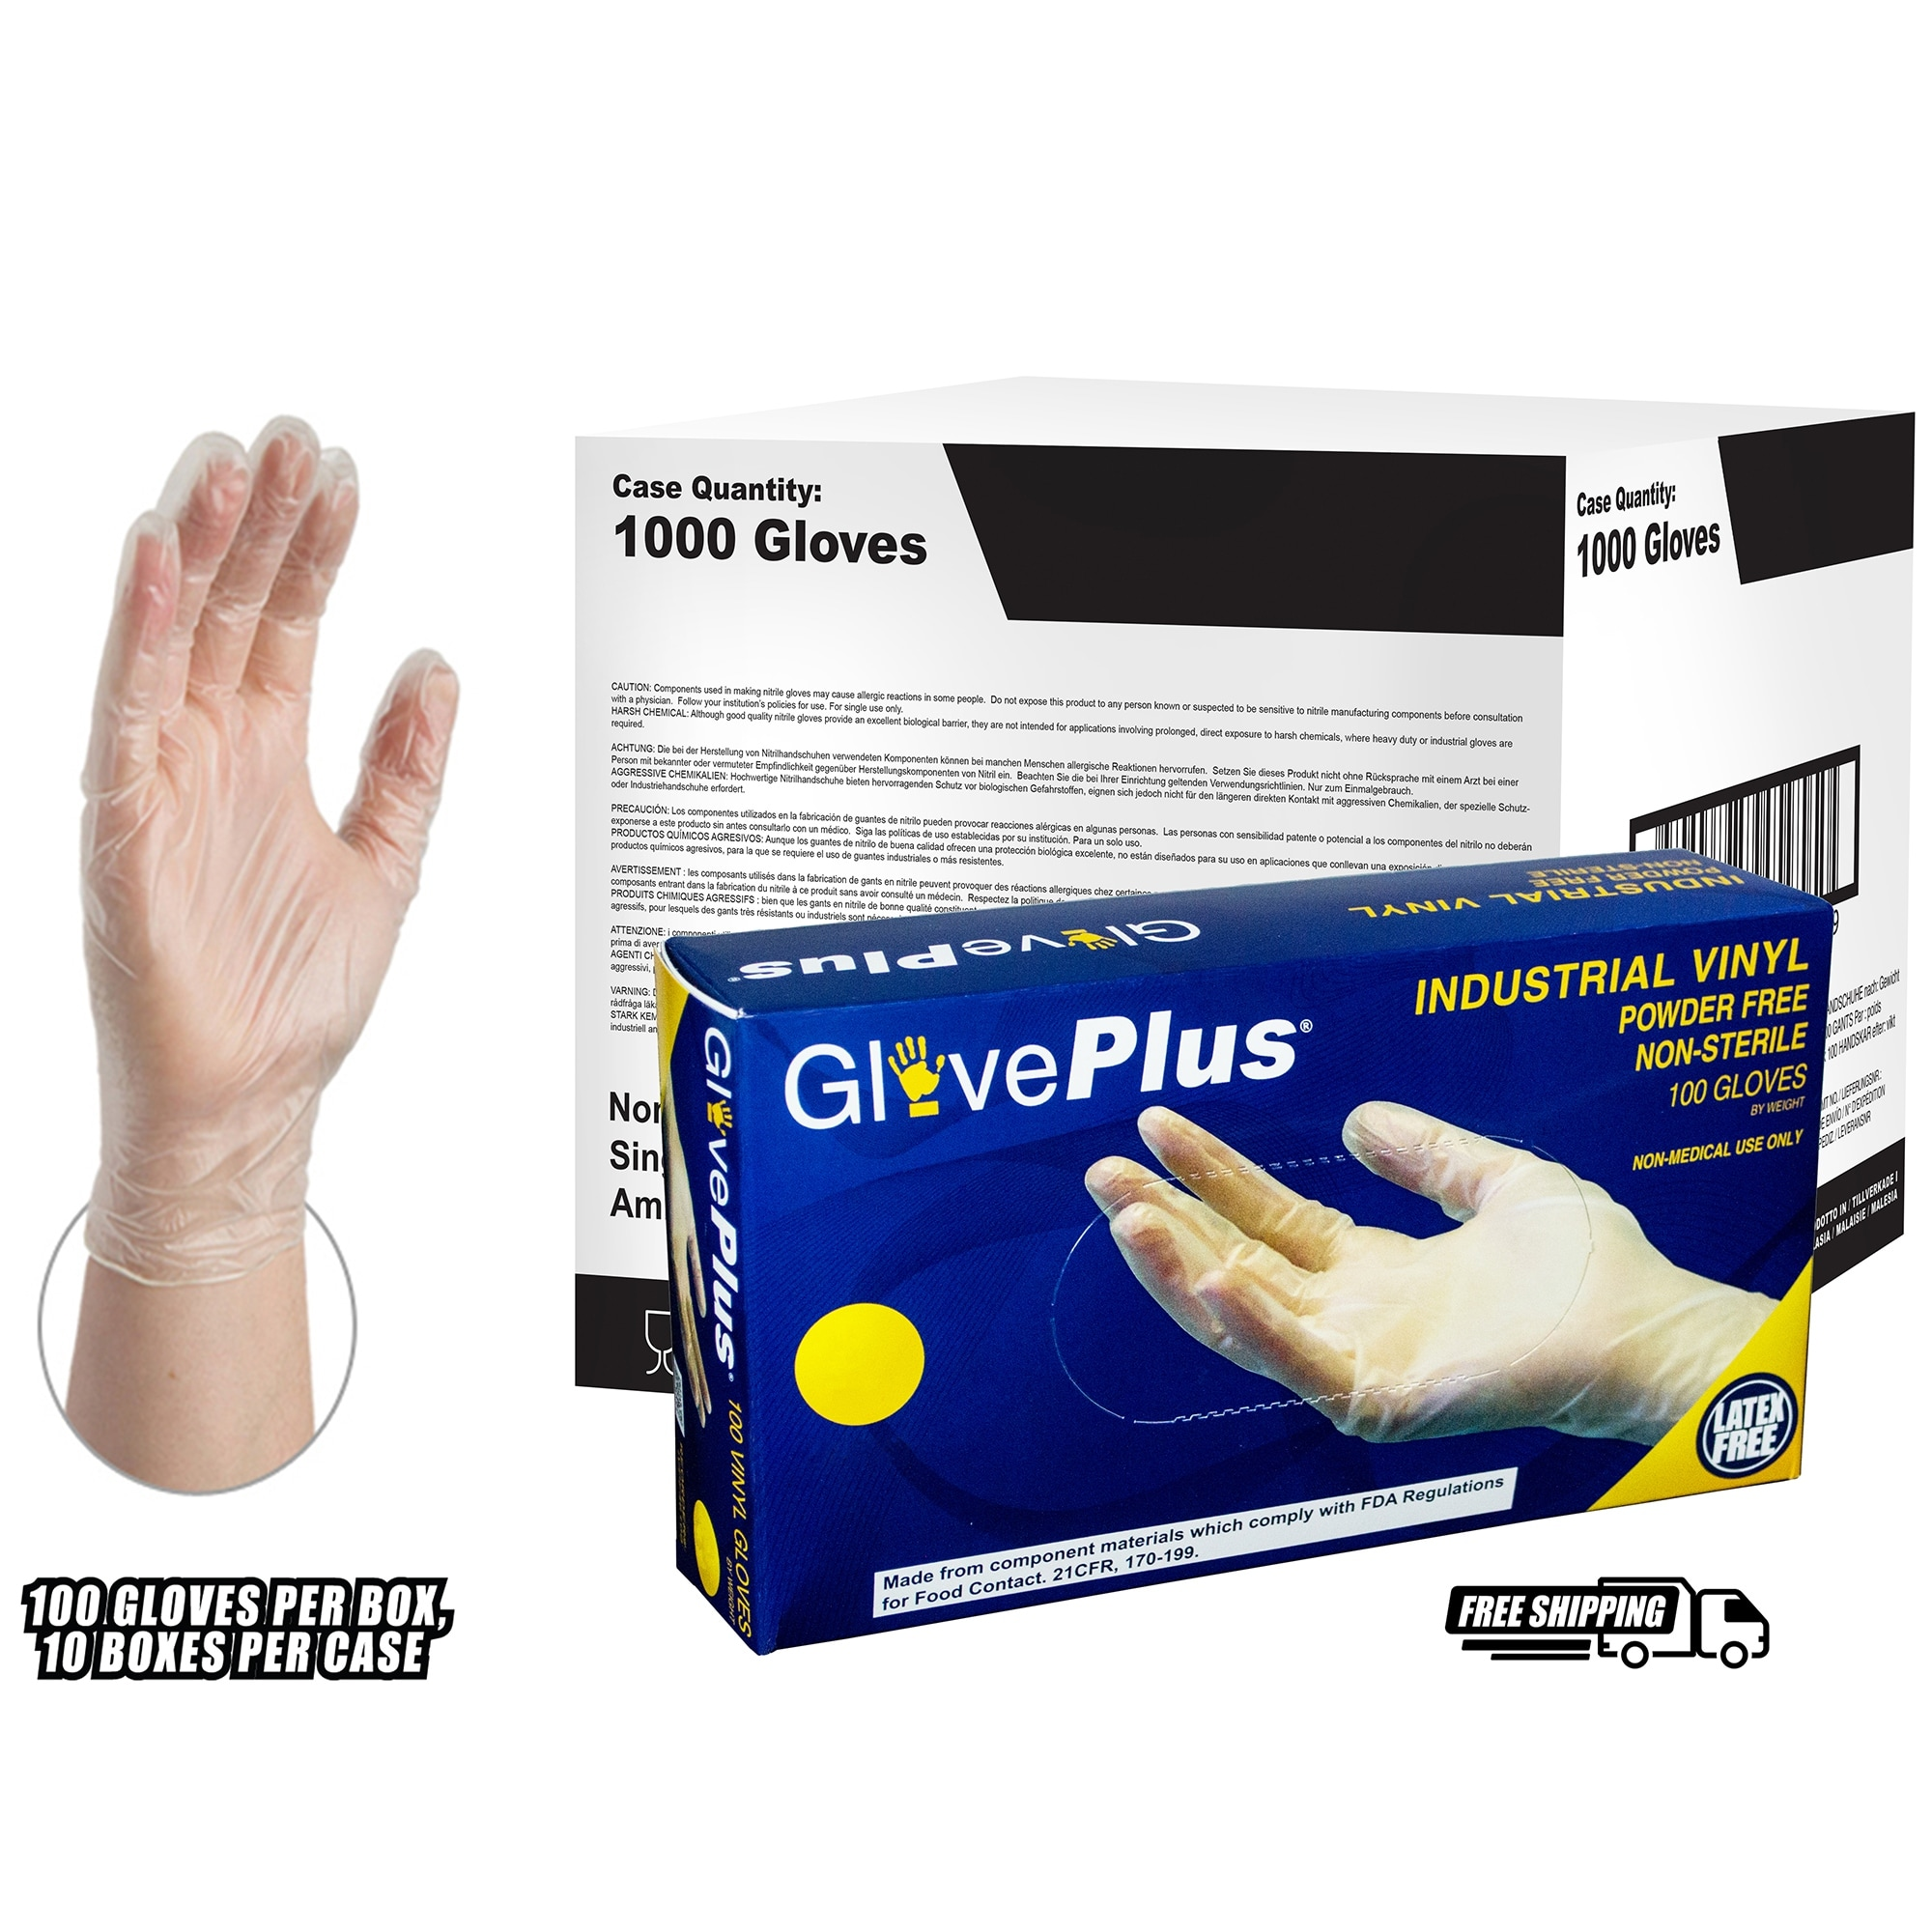 Shop Gloveplus Ivpf Clear Vinyl Industrial Latex Free Disposable Gloves Case Of 1000 By Ammex Overstock 15434193